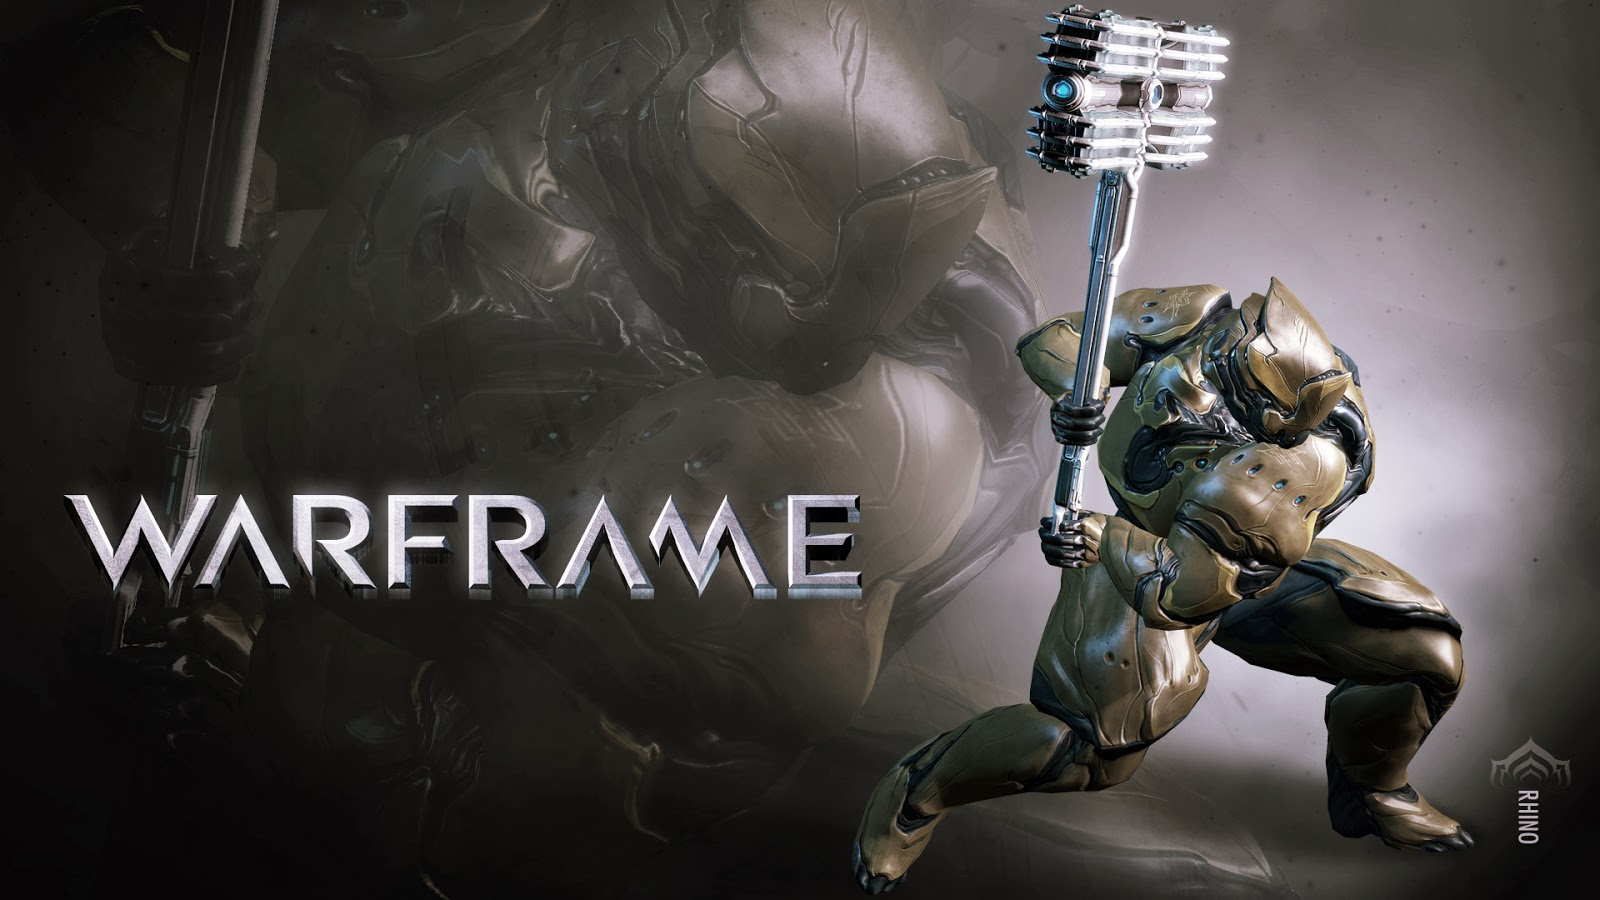 How do i get more weapon slots in warframe